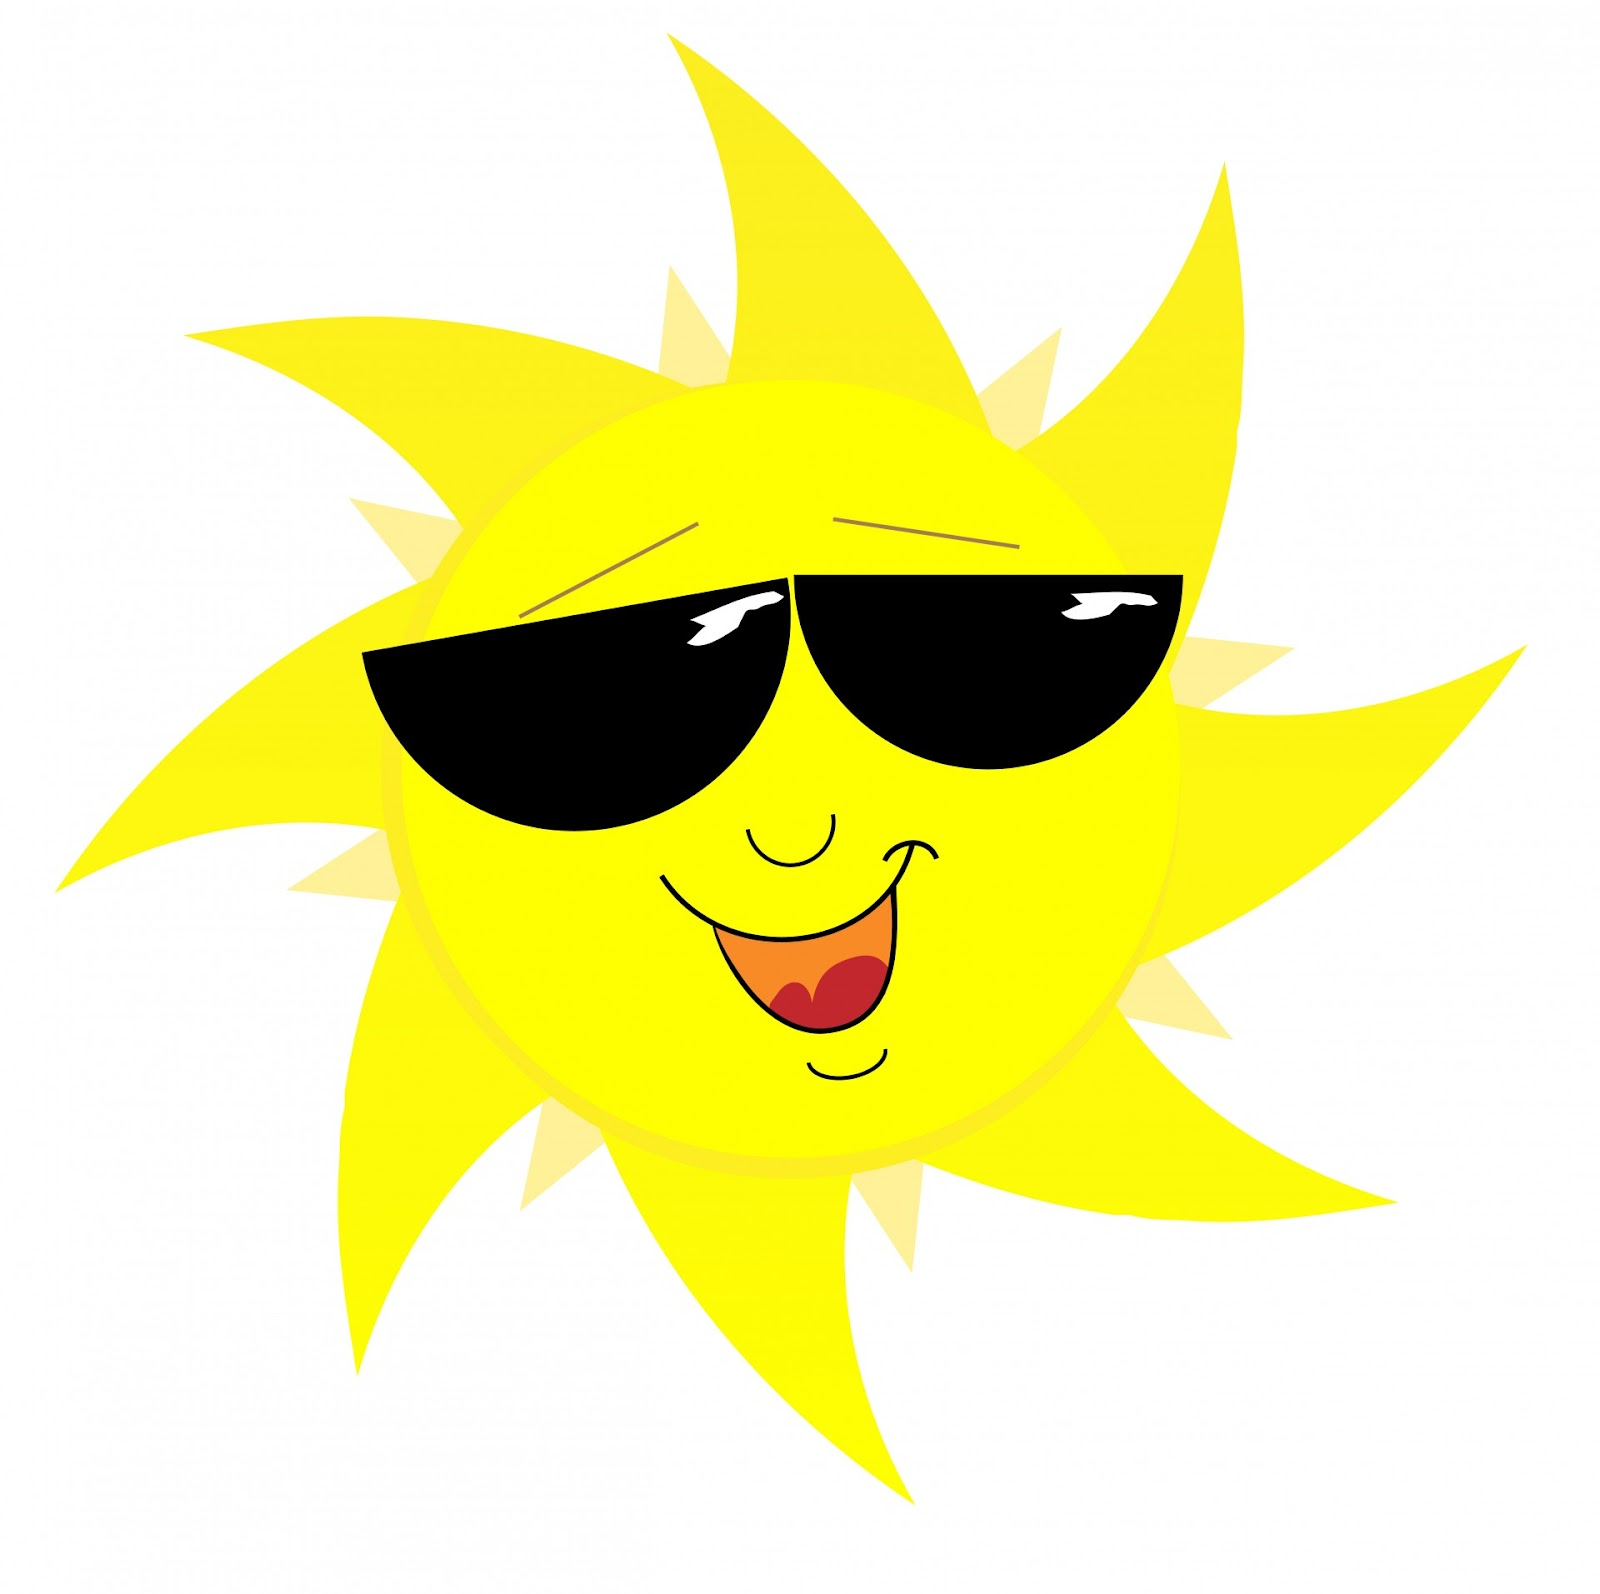 Smiling Sun Face In Sunglasses Free Stock Photo - Public Domain ...